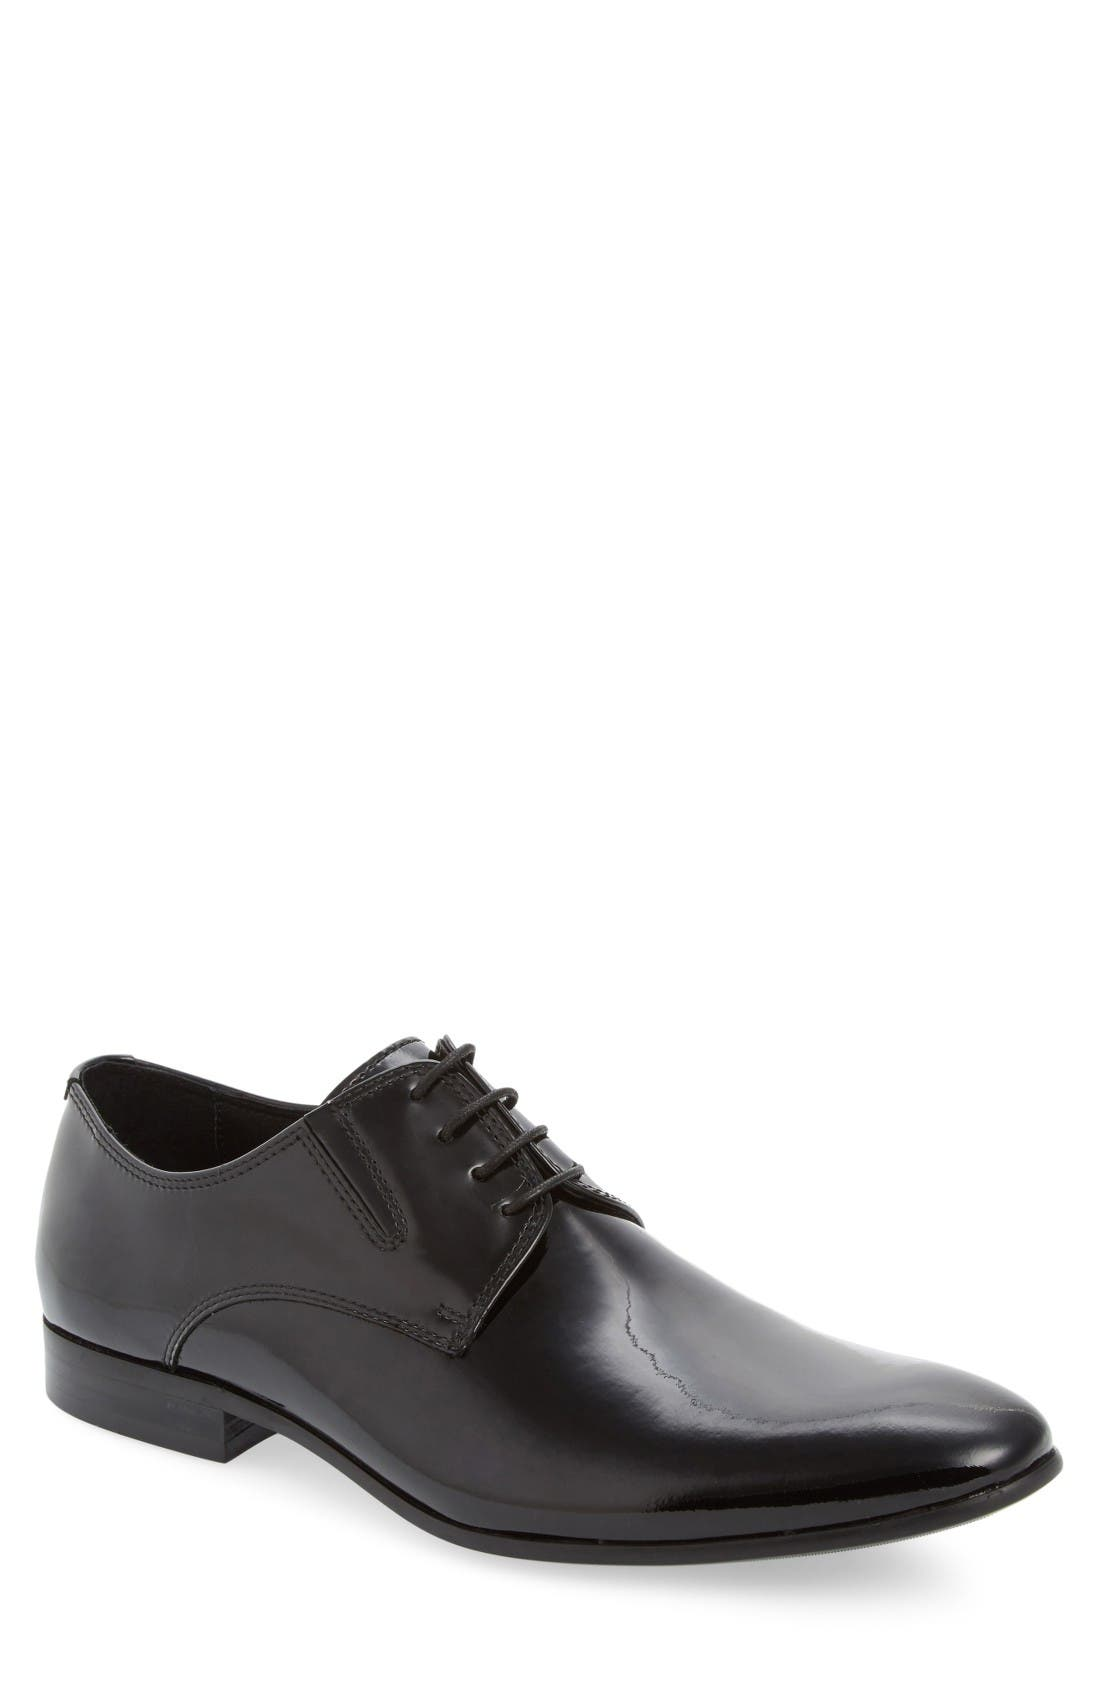 Main Image - Kenneth Cole New York 'Mix-Er' Plain Toe Derby (Men)